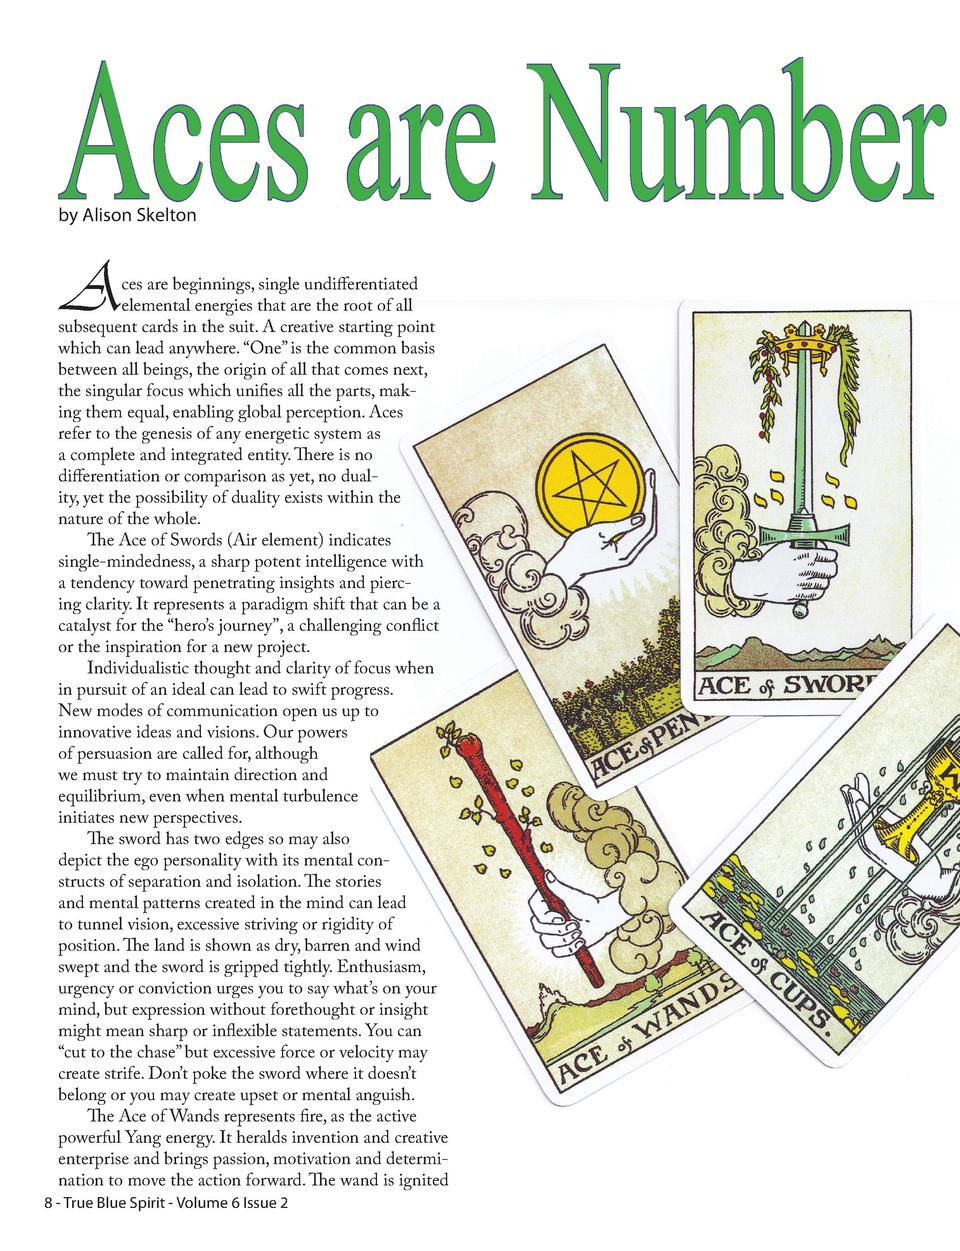 Aces are Number by Alison Skelton  A  ces are beginnings, single undifferentiated elemental energies that are the root of ...